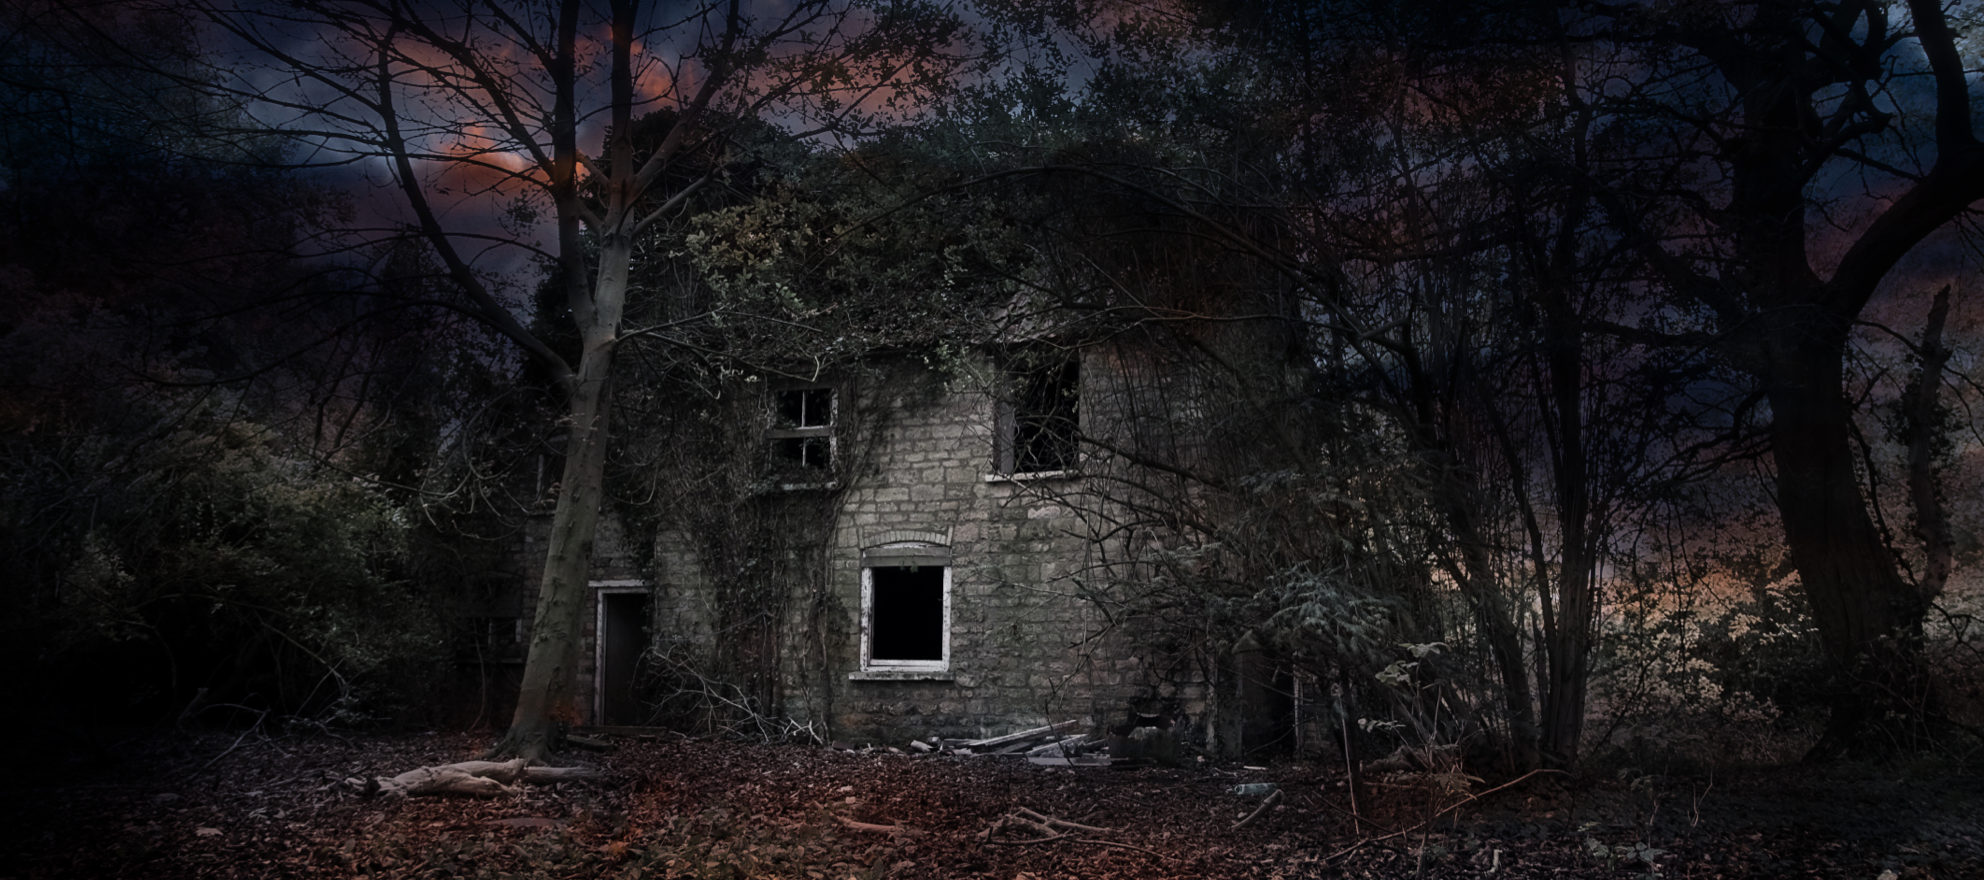 Millennials are 13 times more likely to buy a haunted house